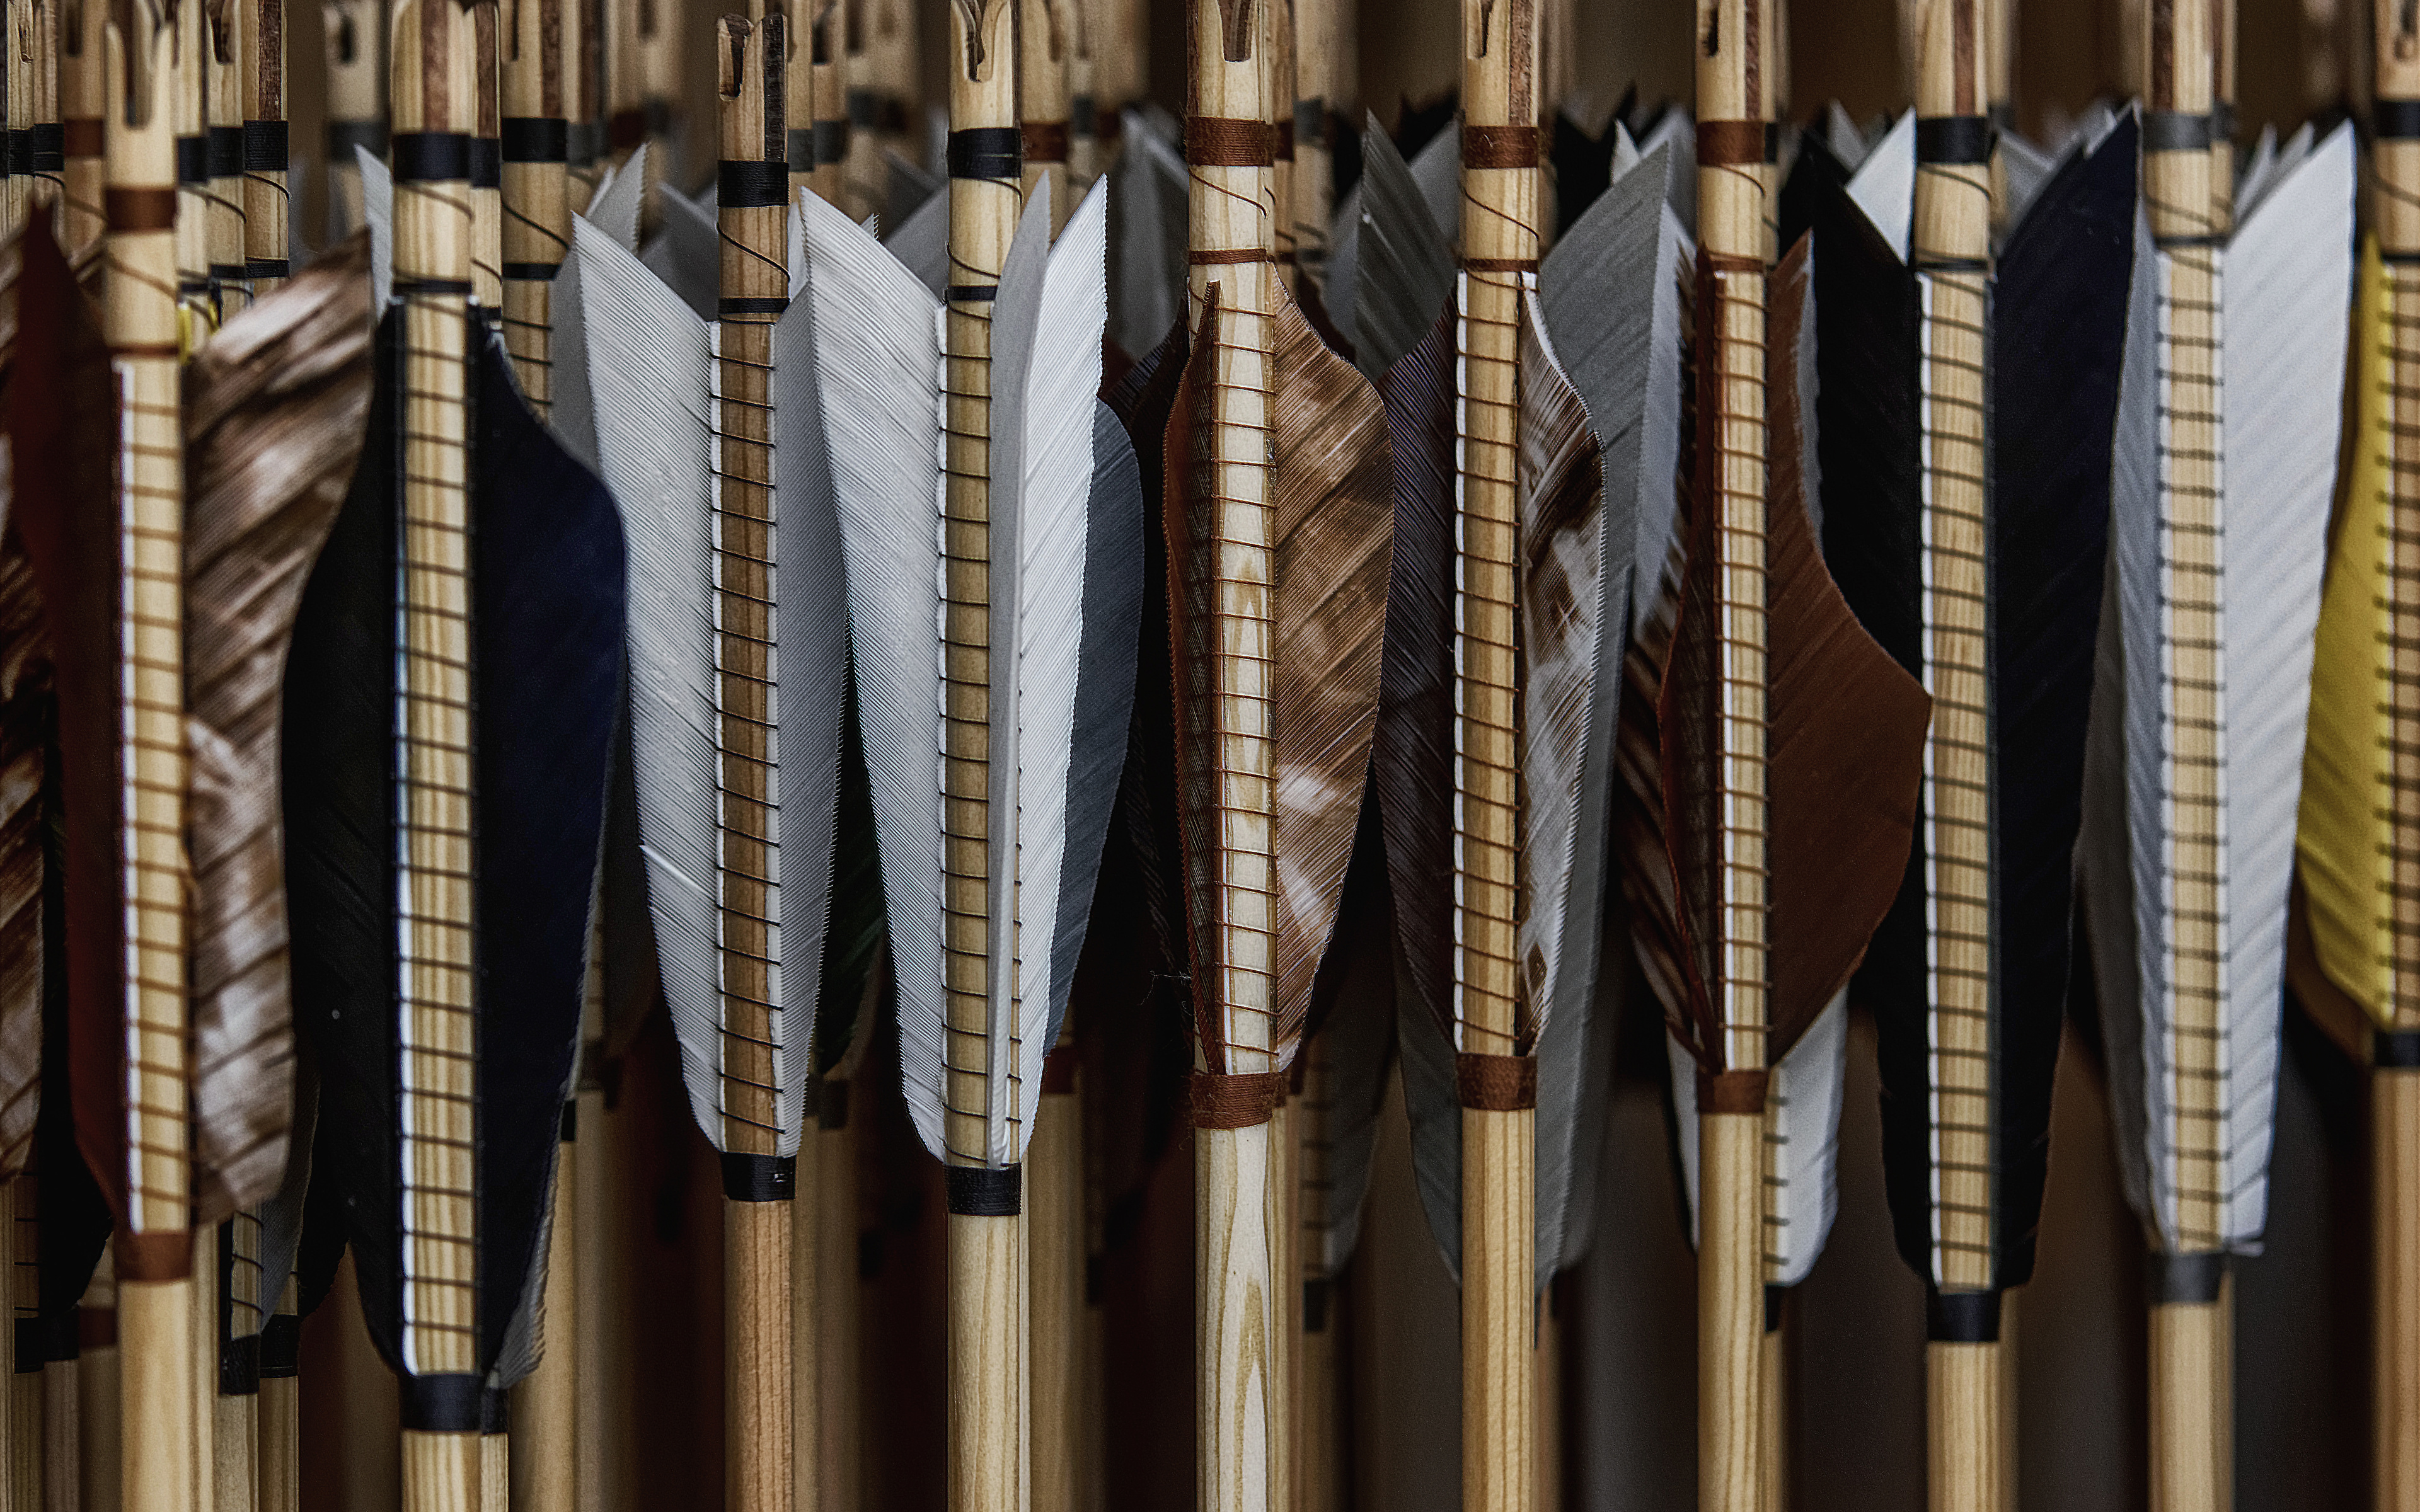 Images Wooden arrow Feathers Closeup 3840x2400 3840x2400